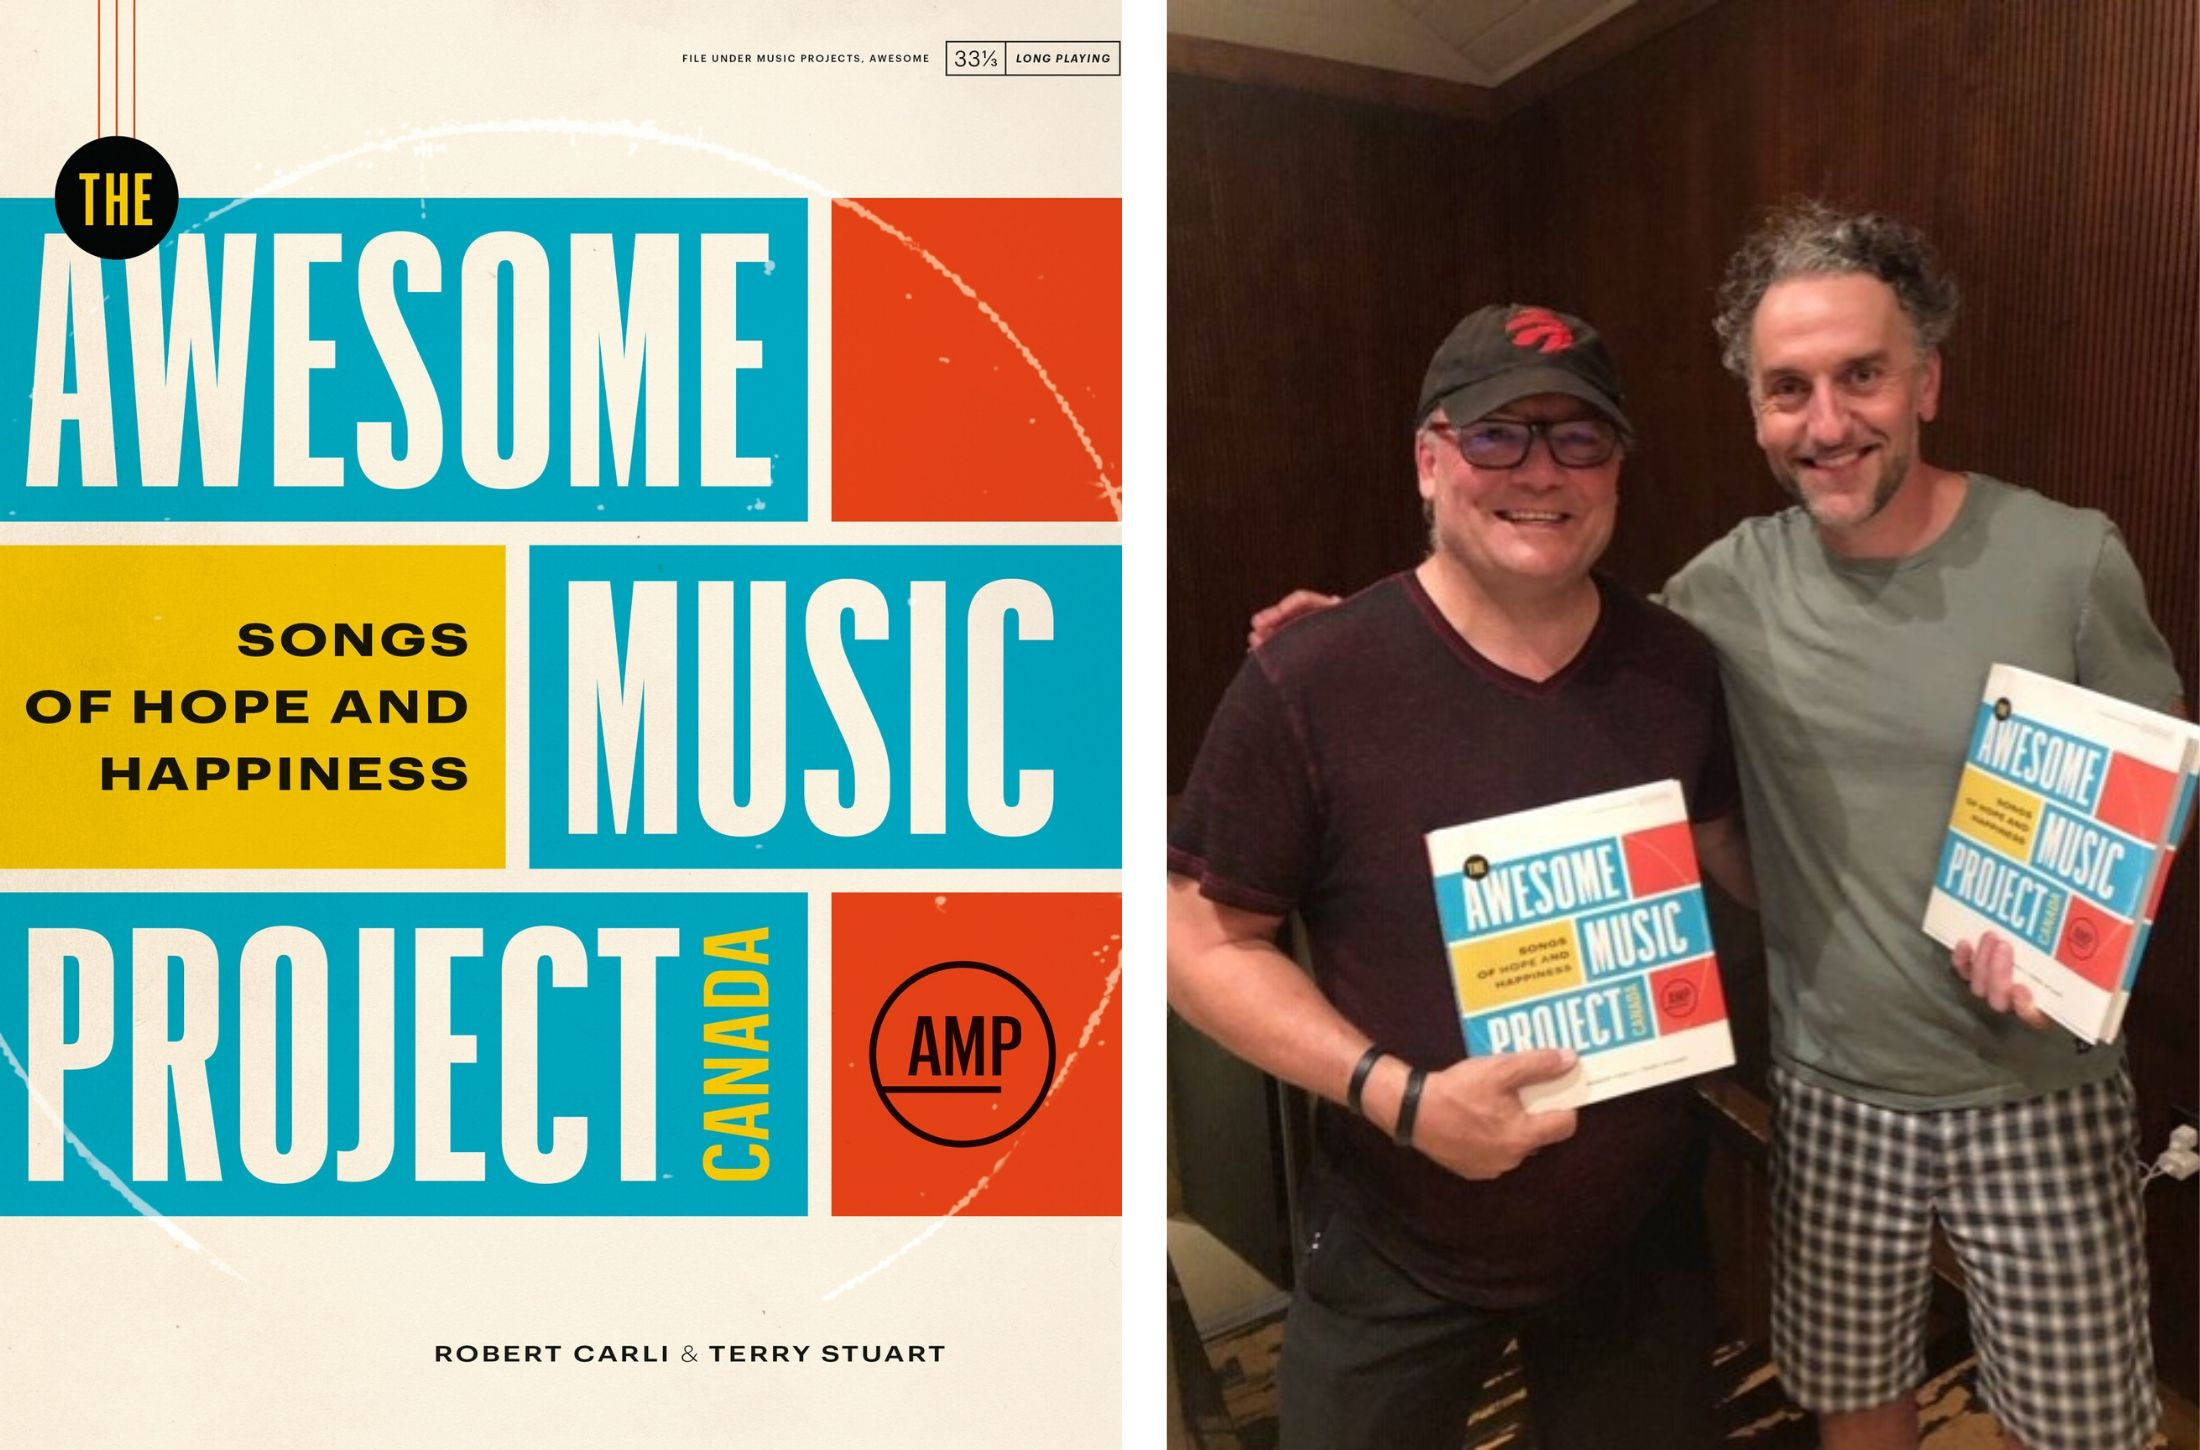 Co-authors Terry Stuart and Robert Carli. Courtesy of The Awesome Music Project.